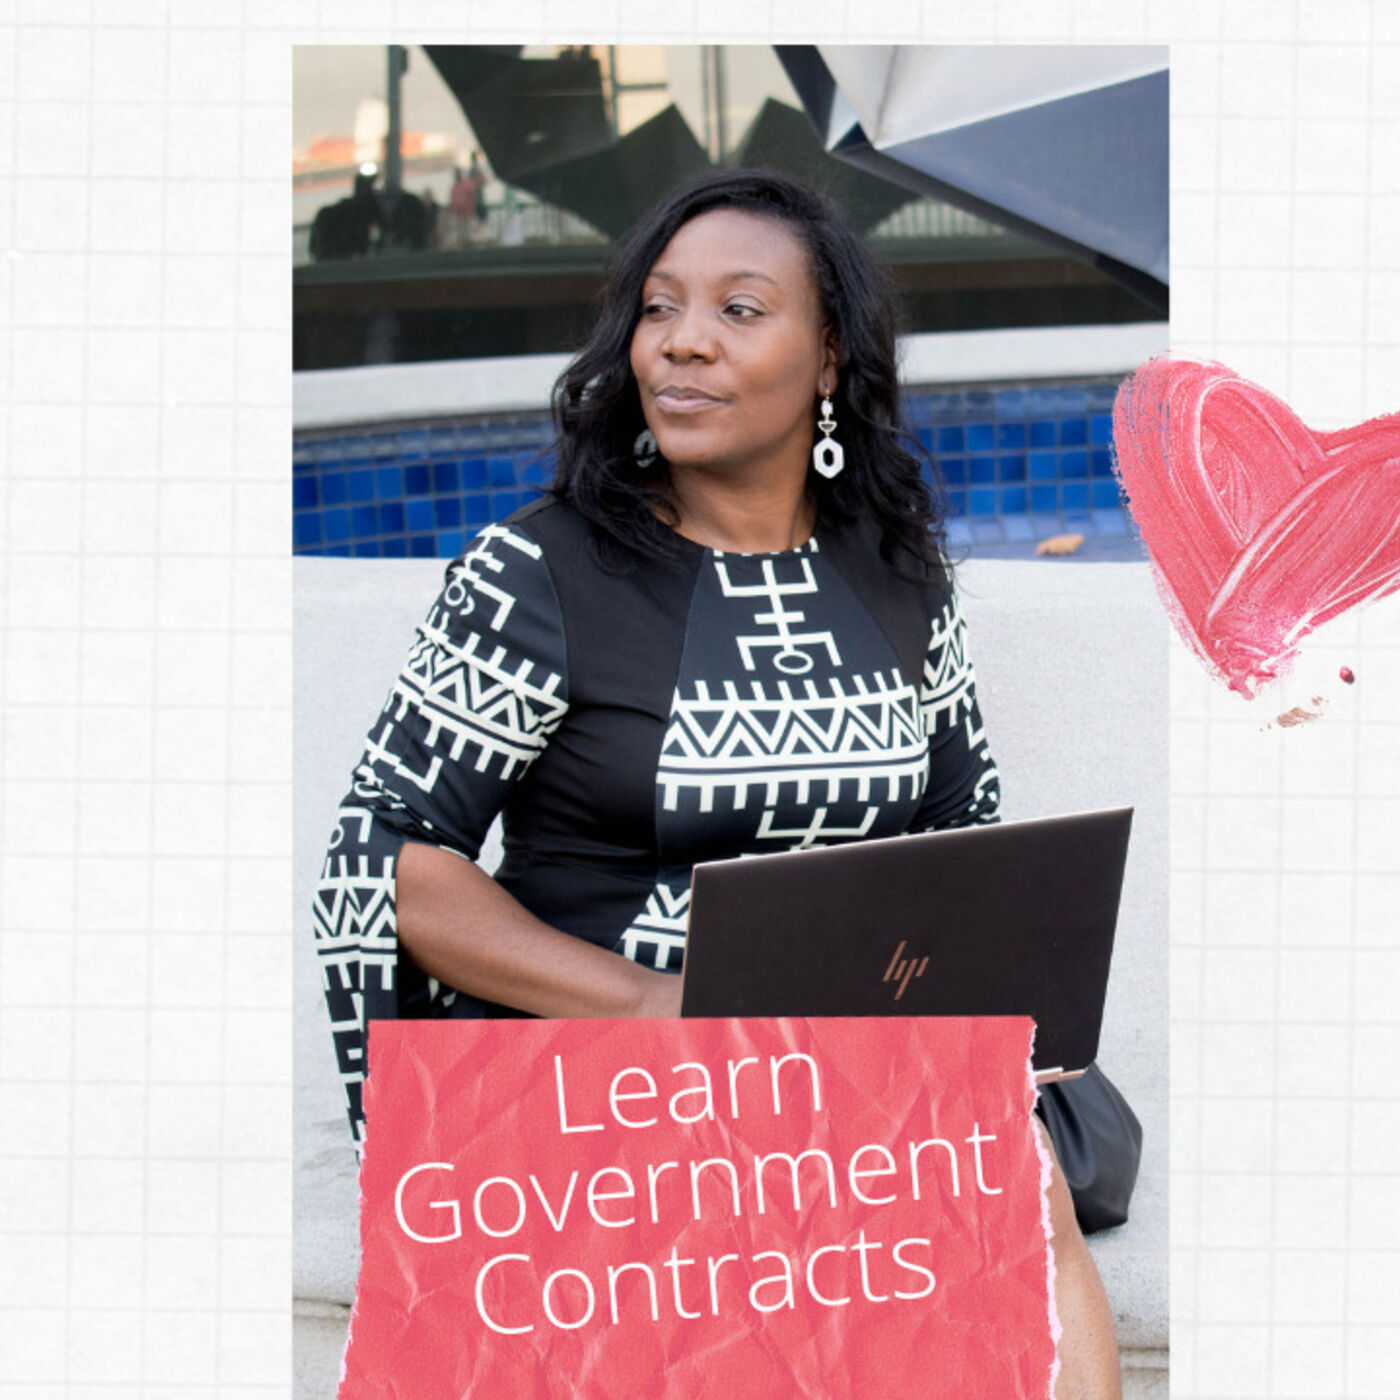 Black-Owned Business Builds A Billion Dollar Business with Government Contracts